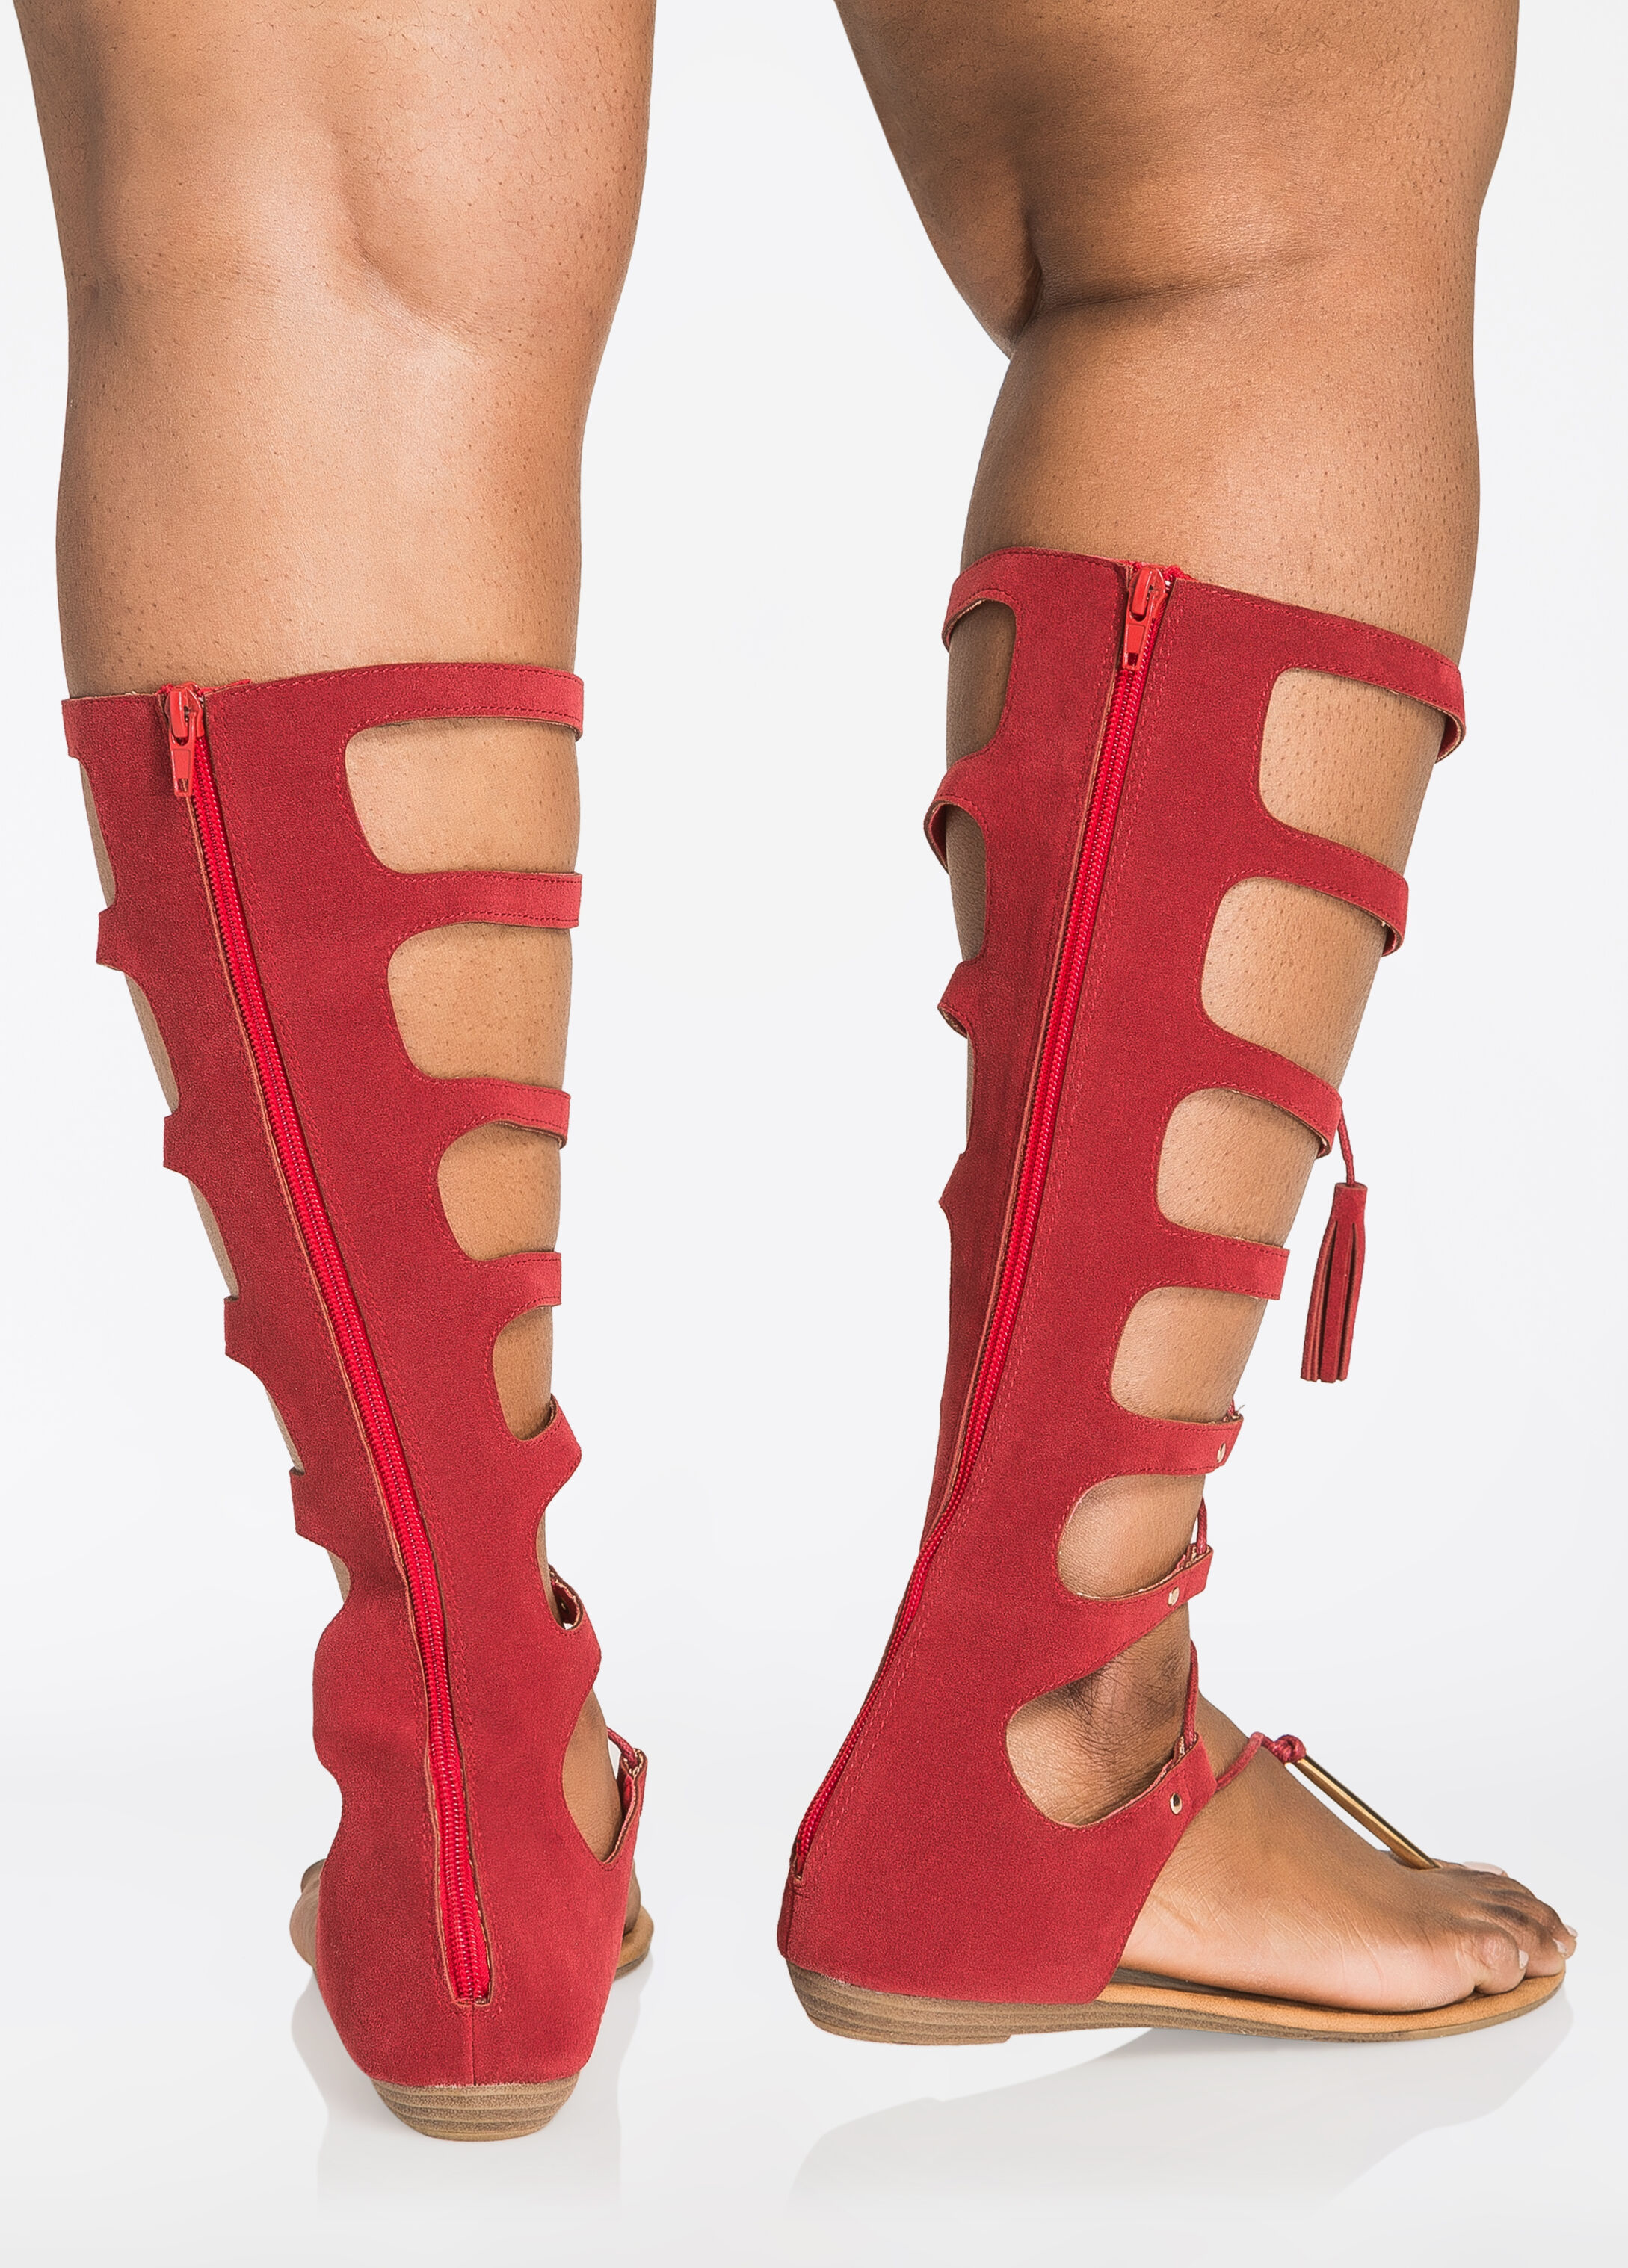 Lace-Up Gladiator Sandals - Wide Width